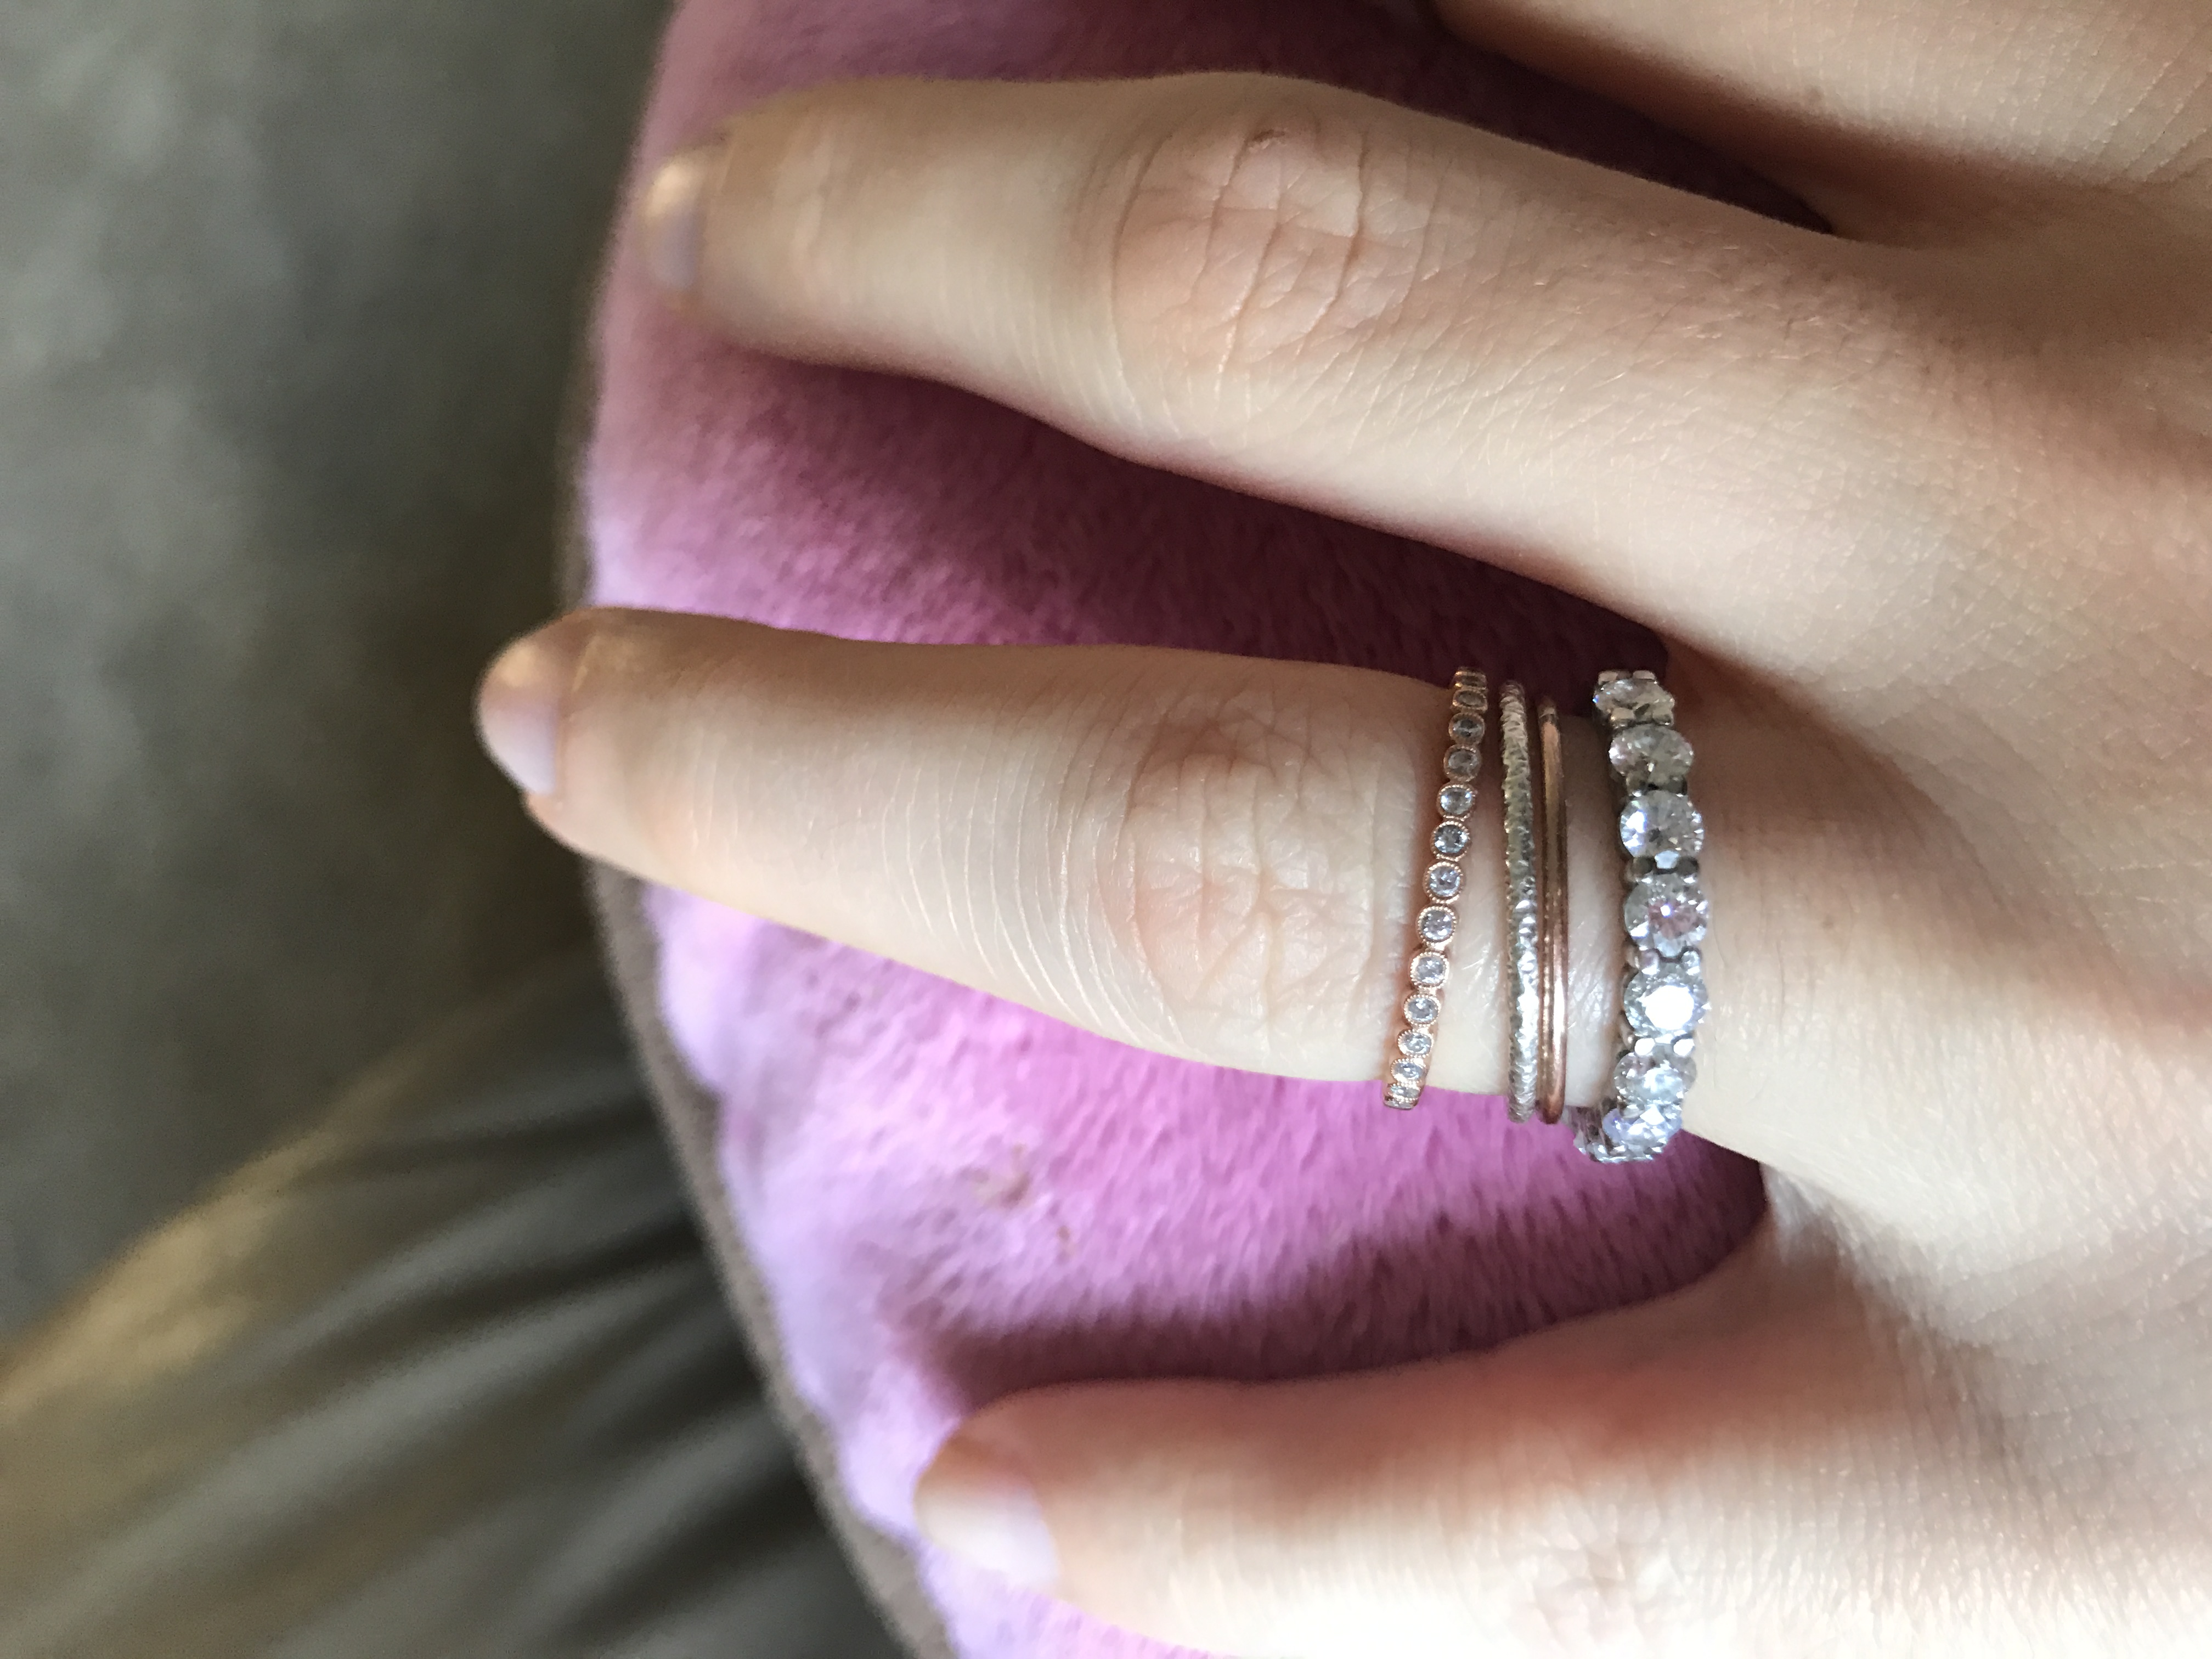 sneak peek of my set it shipped today and its stunning shane co wedding bands These are the bands I m working with right now The solitaire will be an upgrade in the one I currently have My stone now is 7 56mm says the guy at Shane